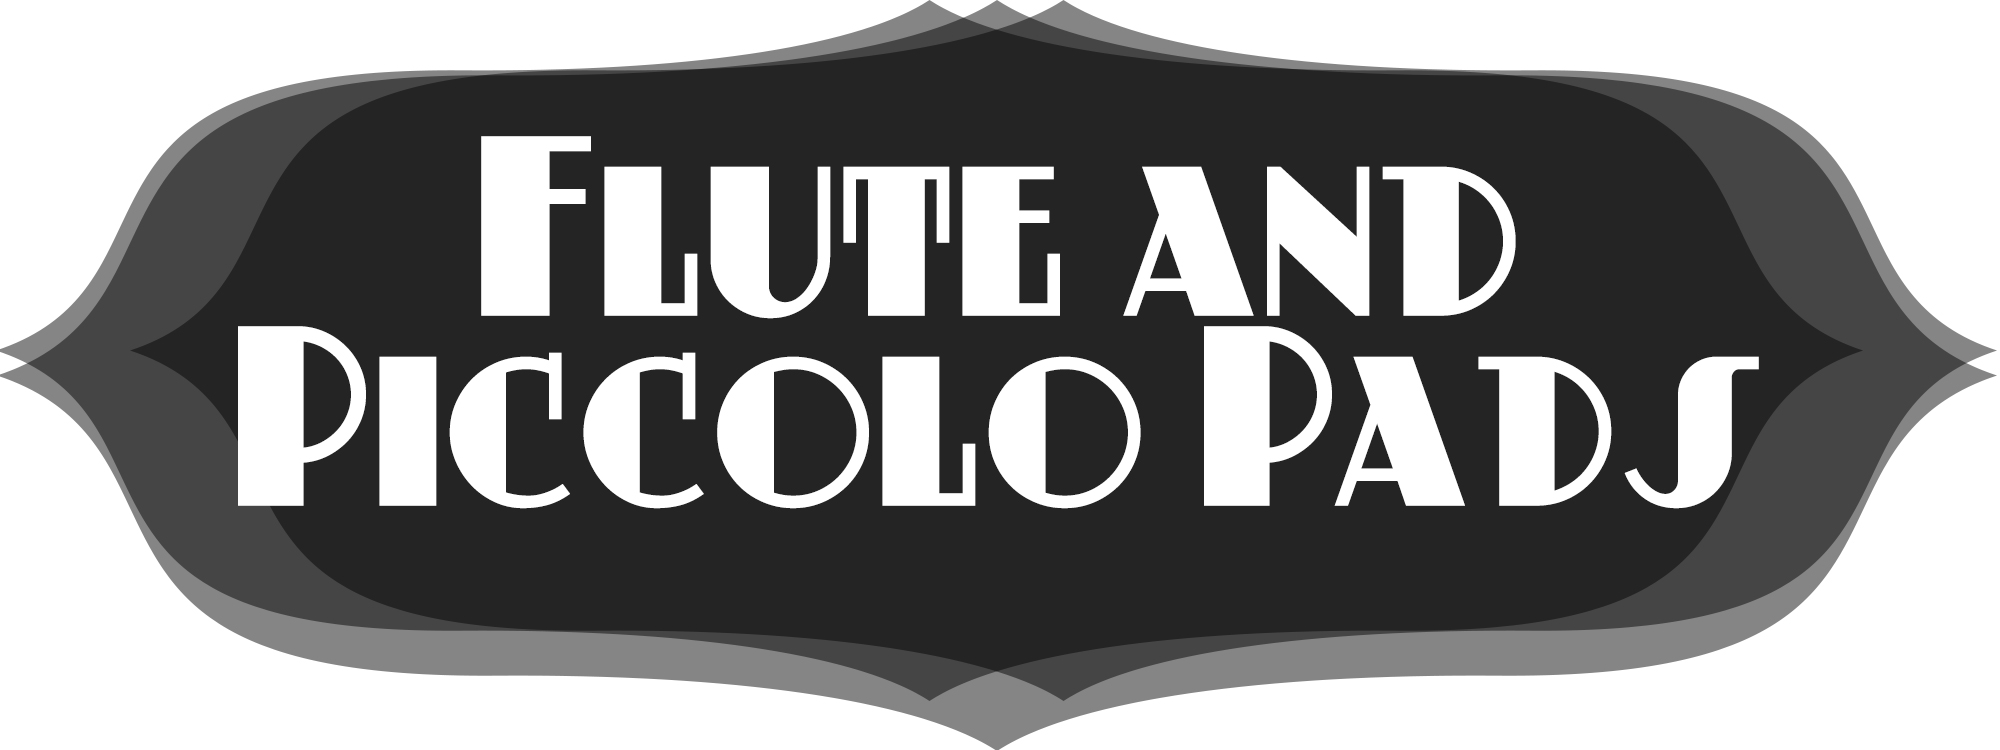 flute and piccolo pads